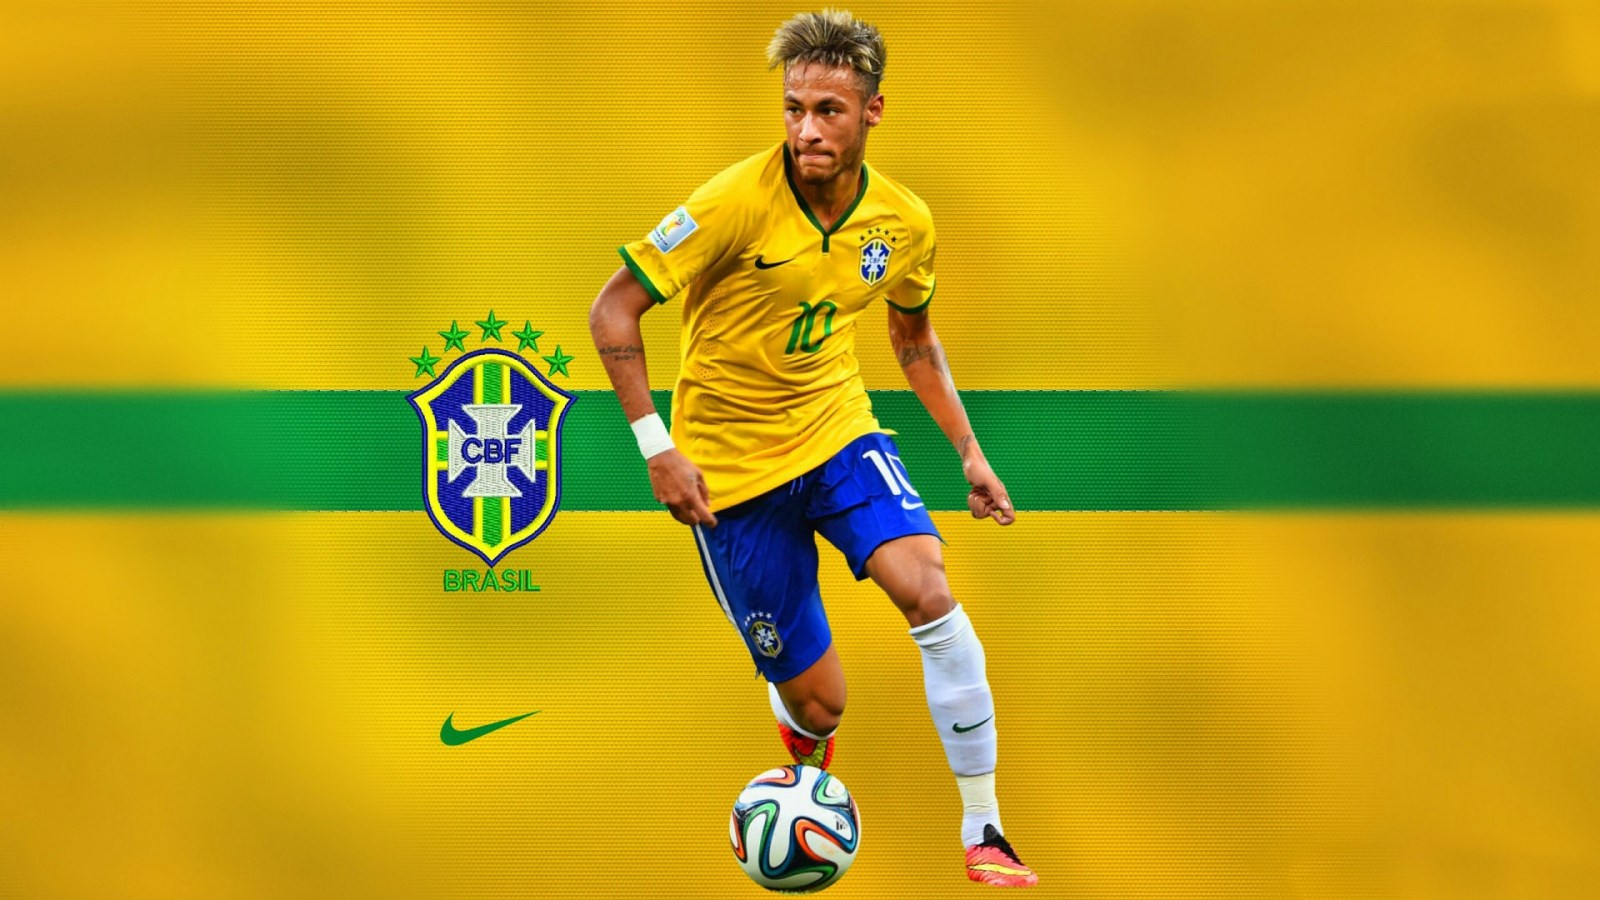 Wallpaper Cars Foto Do Jogador Neymar 2017 Brasil 1600 215 900 Wallpaper 29 Hd